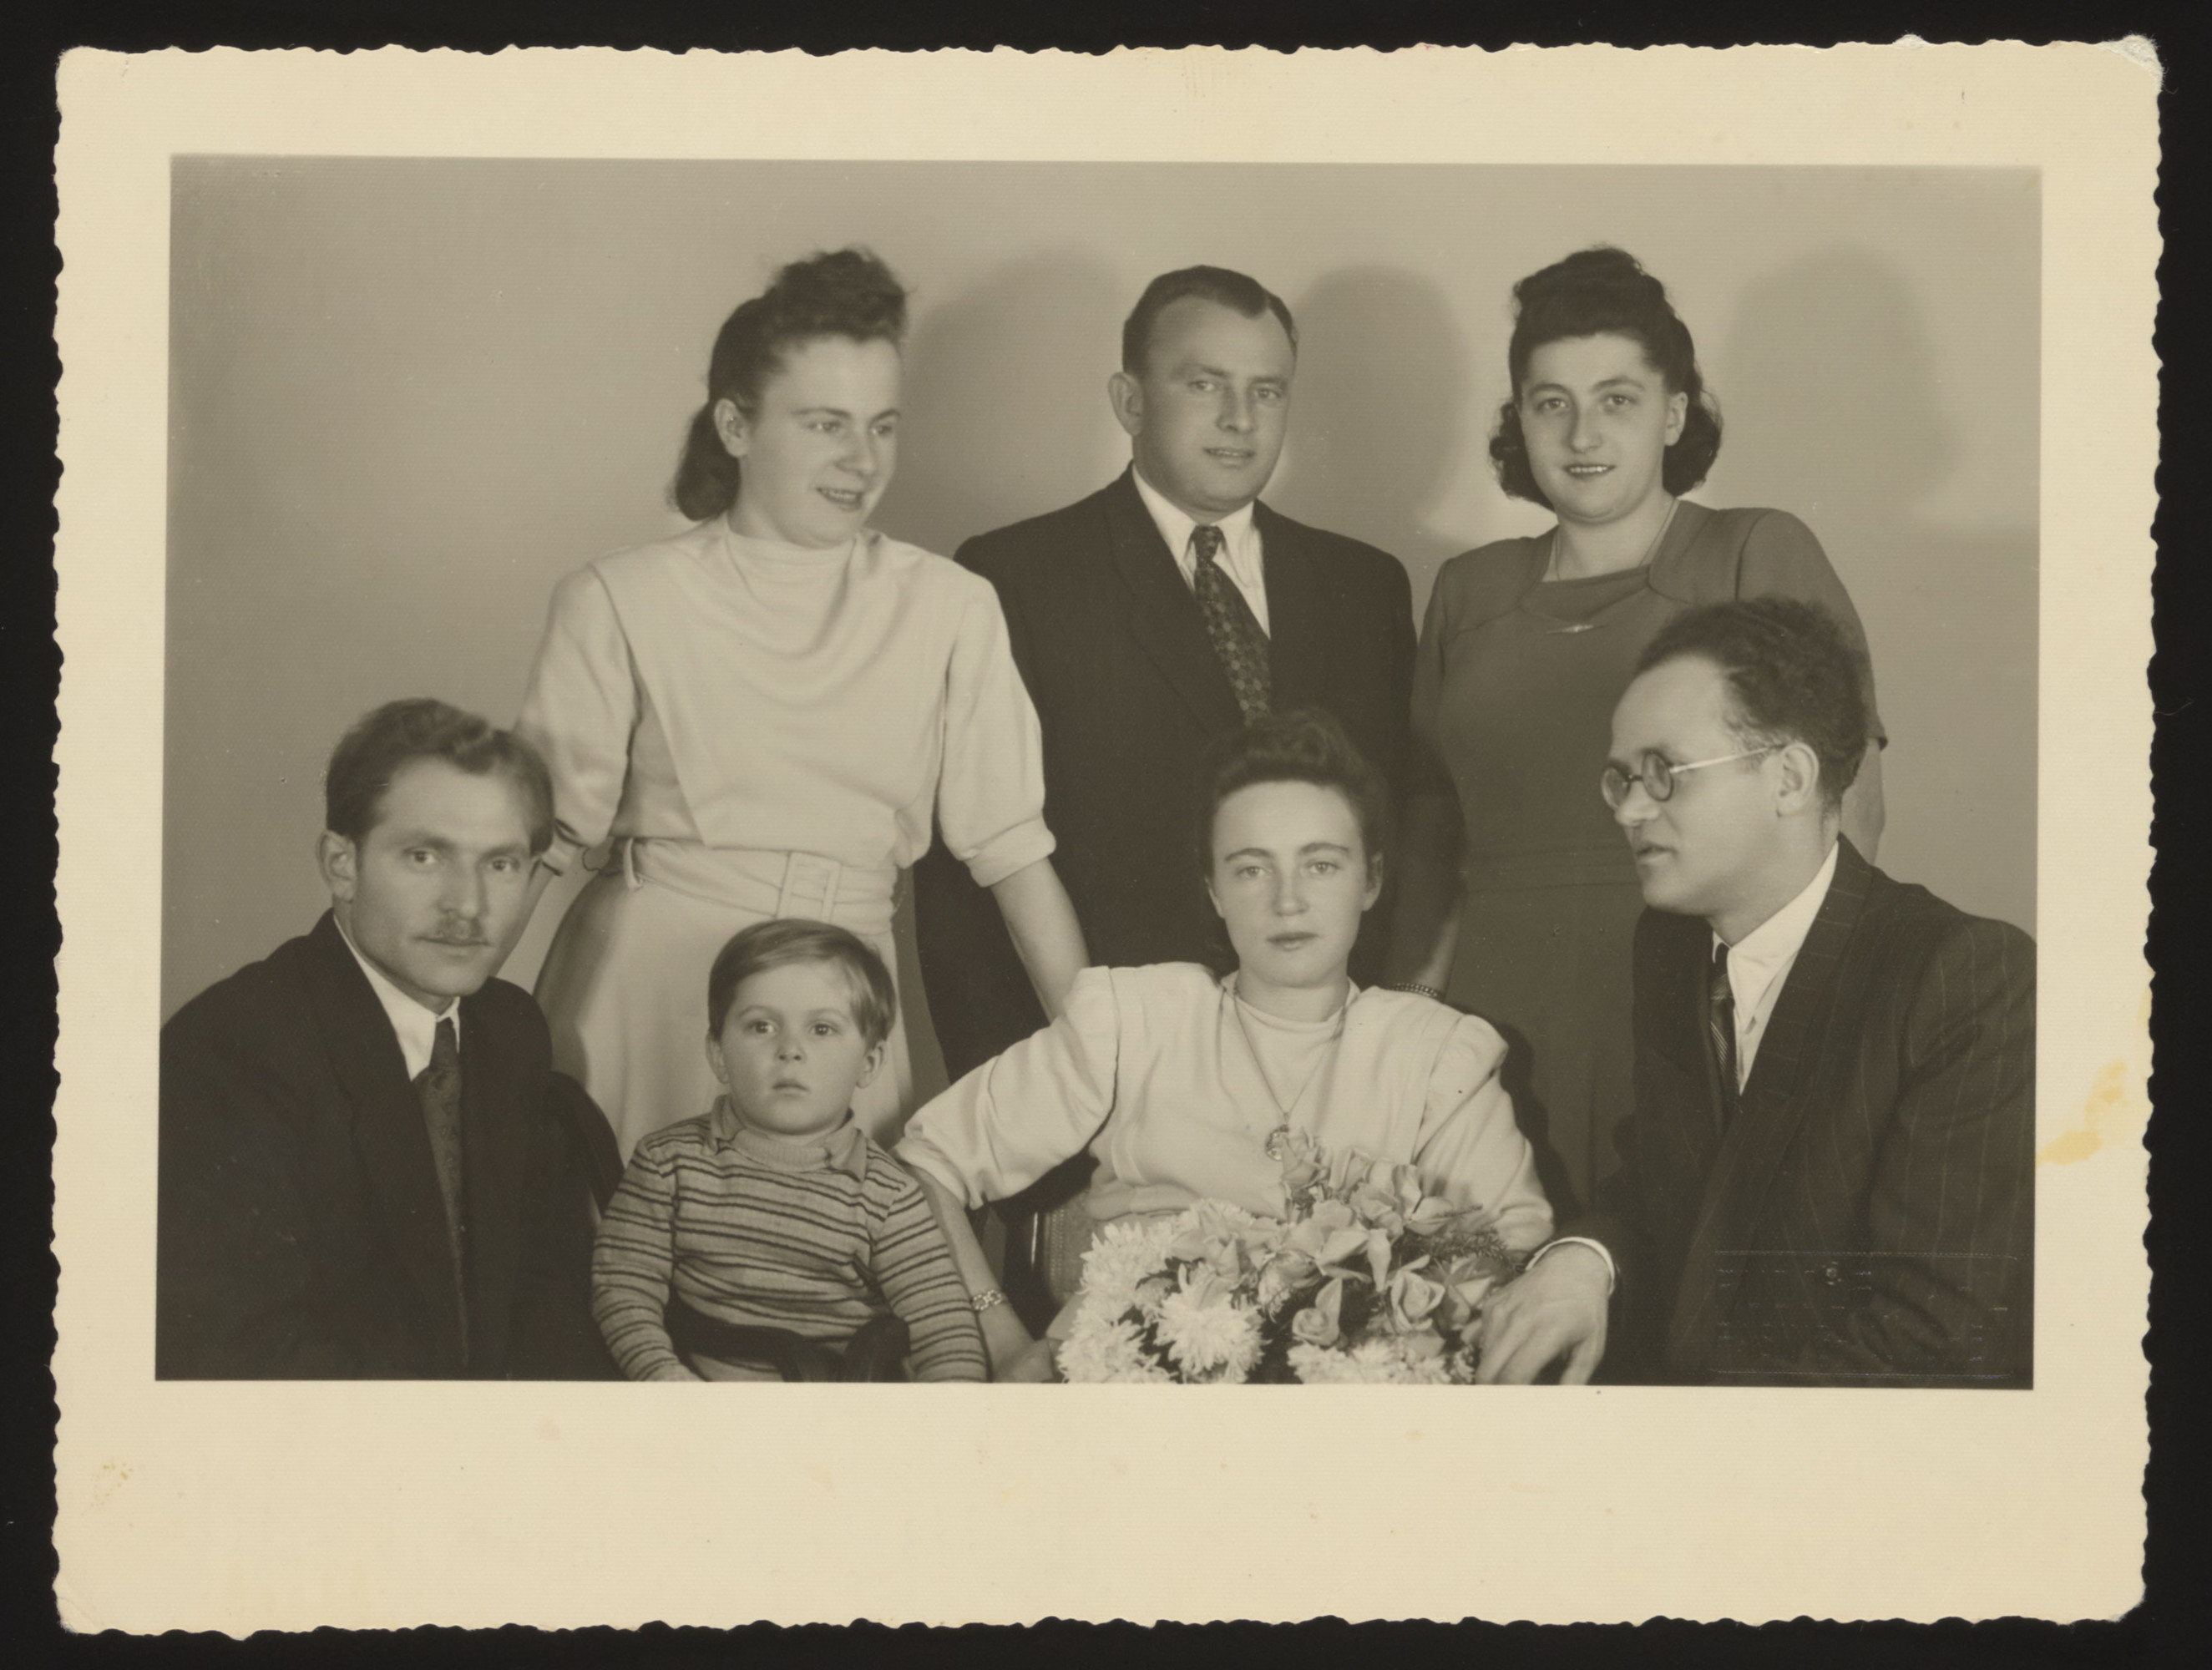 Group portrait of a Jewish family and friends celebrating a wedding in Munich after the war.  Pictured (standing from left) are Etel Najman Zilbersztok, Jakub and Hanka Mandelbaum.  Seated are Herszl Zilbersztok, Heskel Zilbersztok, Lifcia Najman (the bride) and Lewek Szabason (the groom).